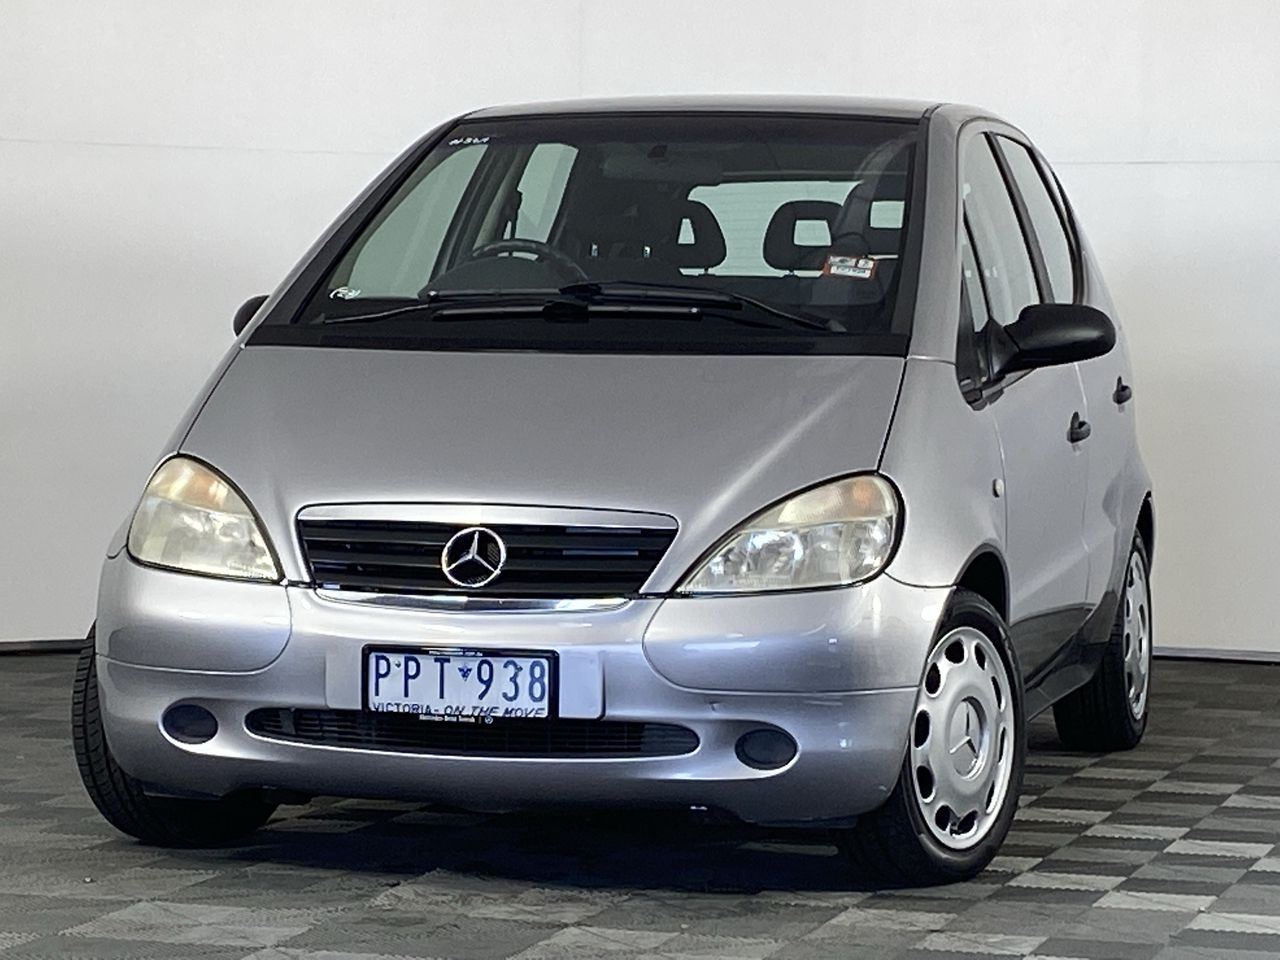 1999 Mercedes Benz A160 Classic W168 Automatic Hatchback